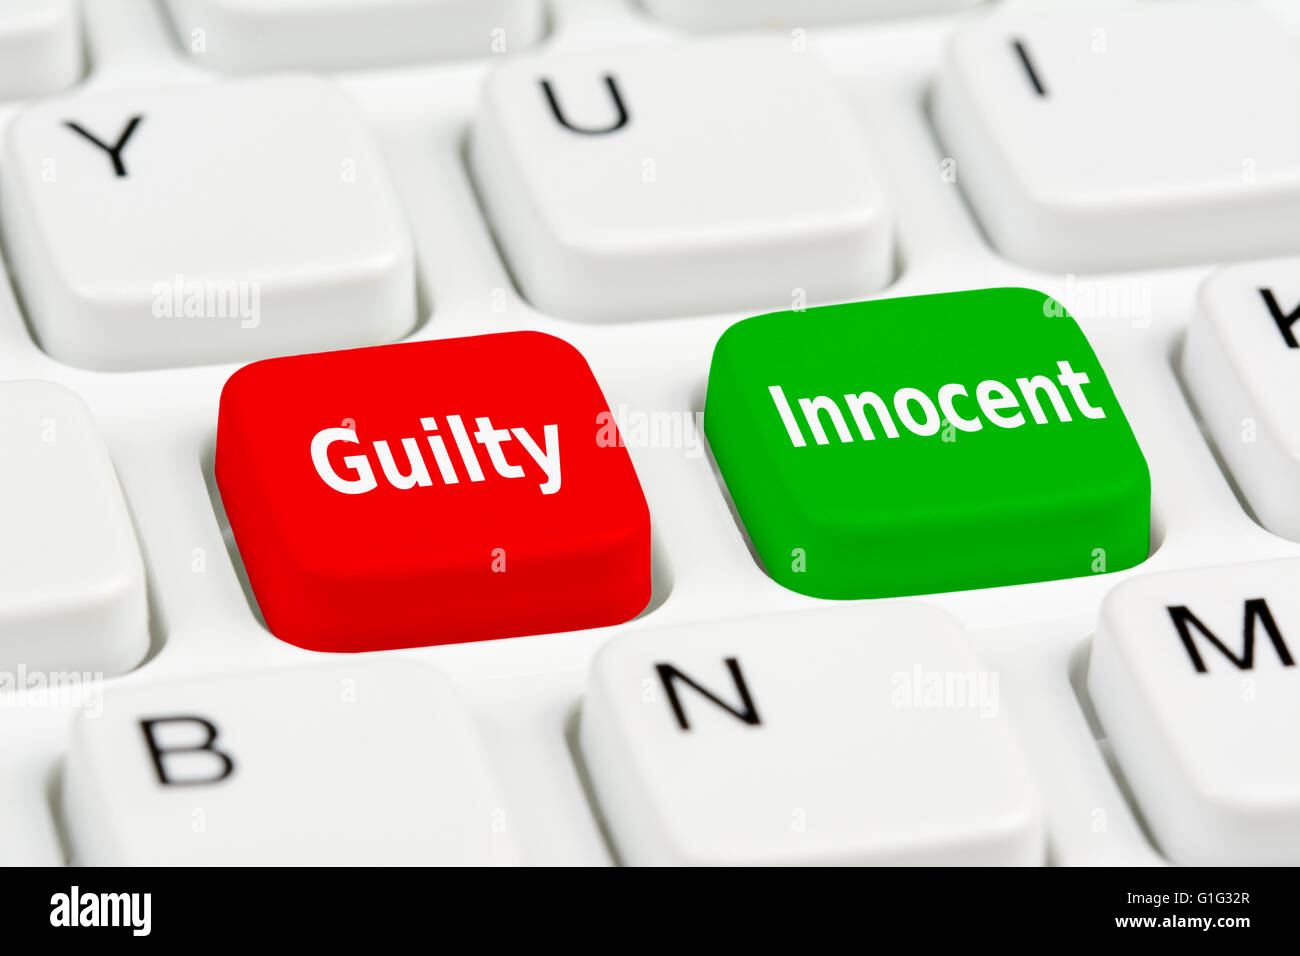 Guilty and Innocent buttons on a computer keyboard. - Stock Image